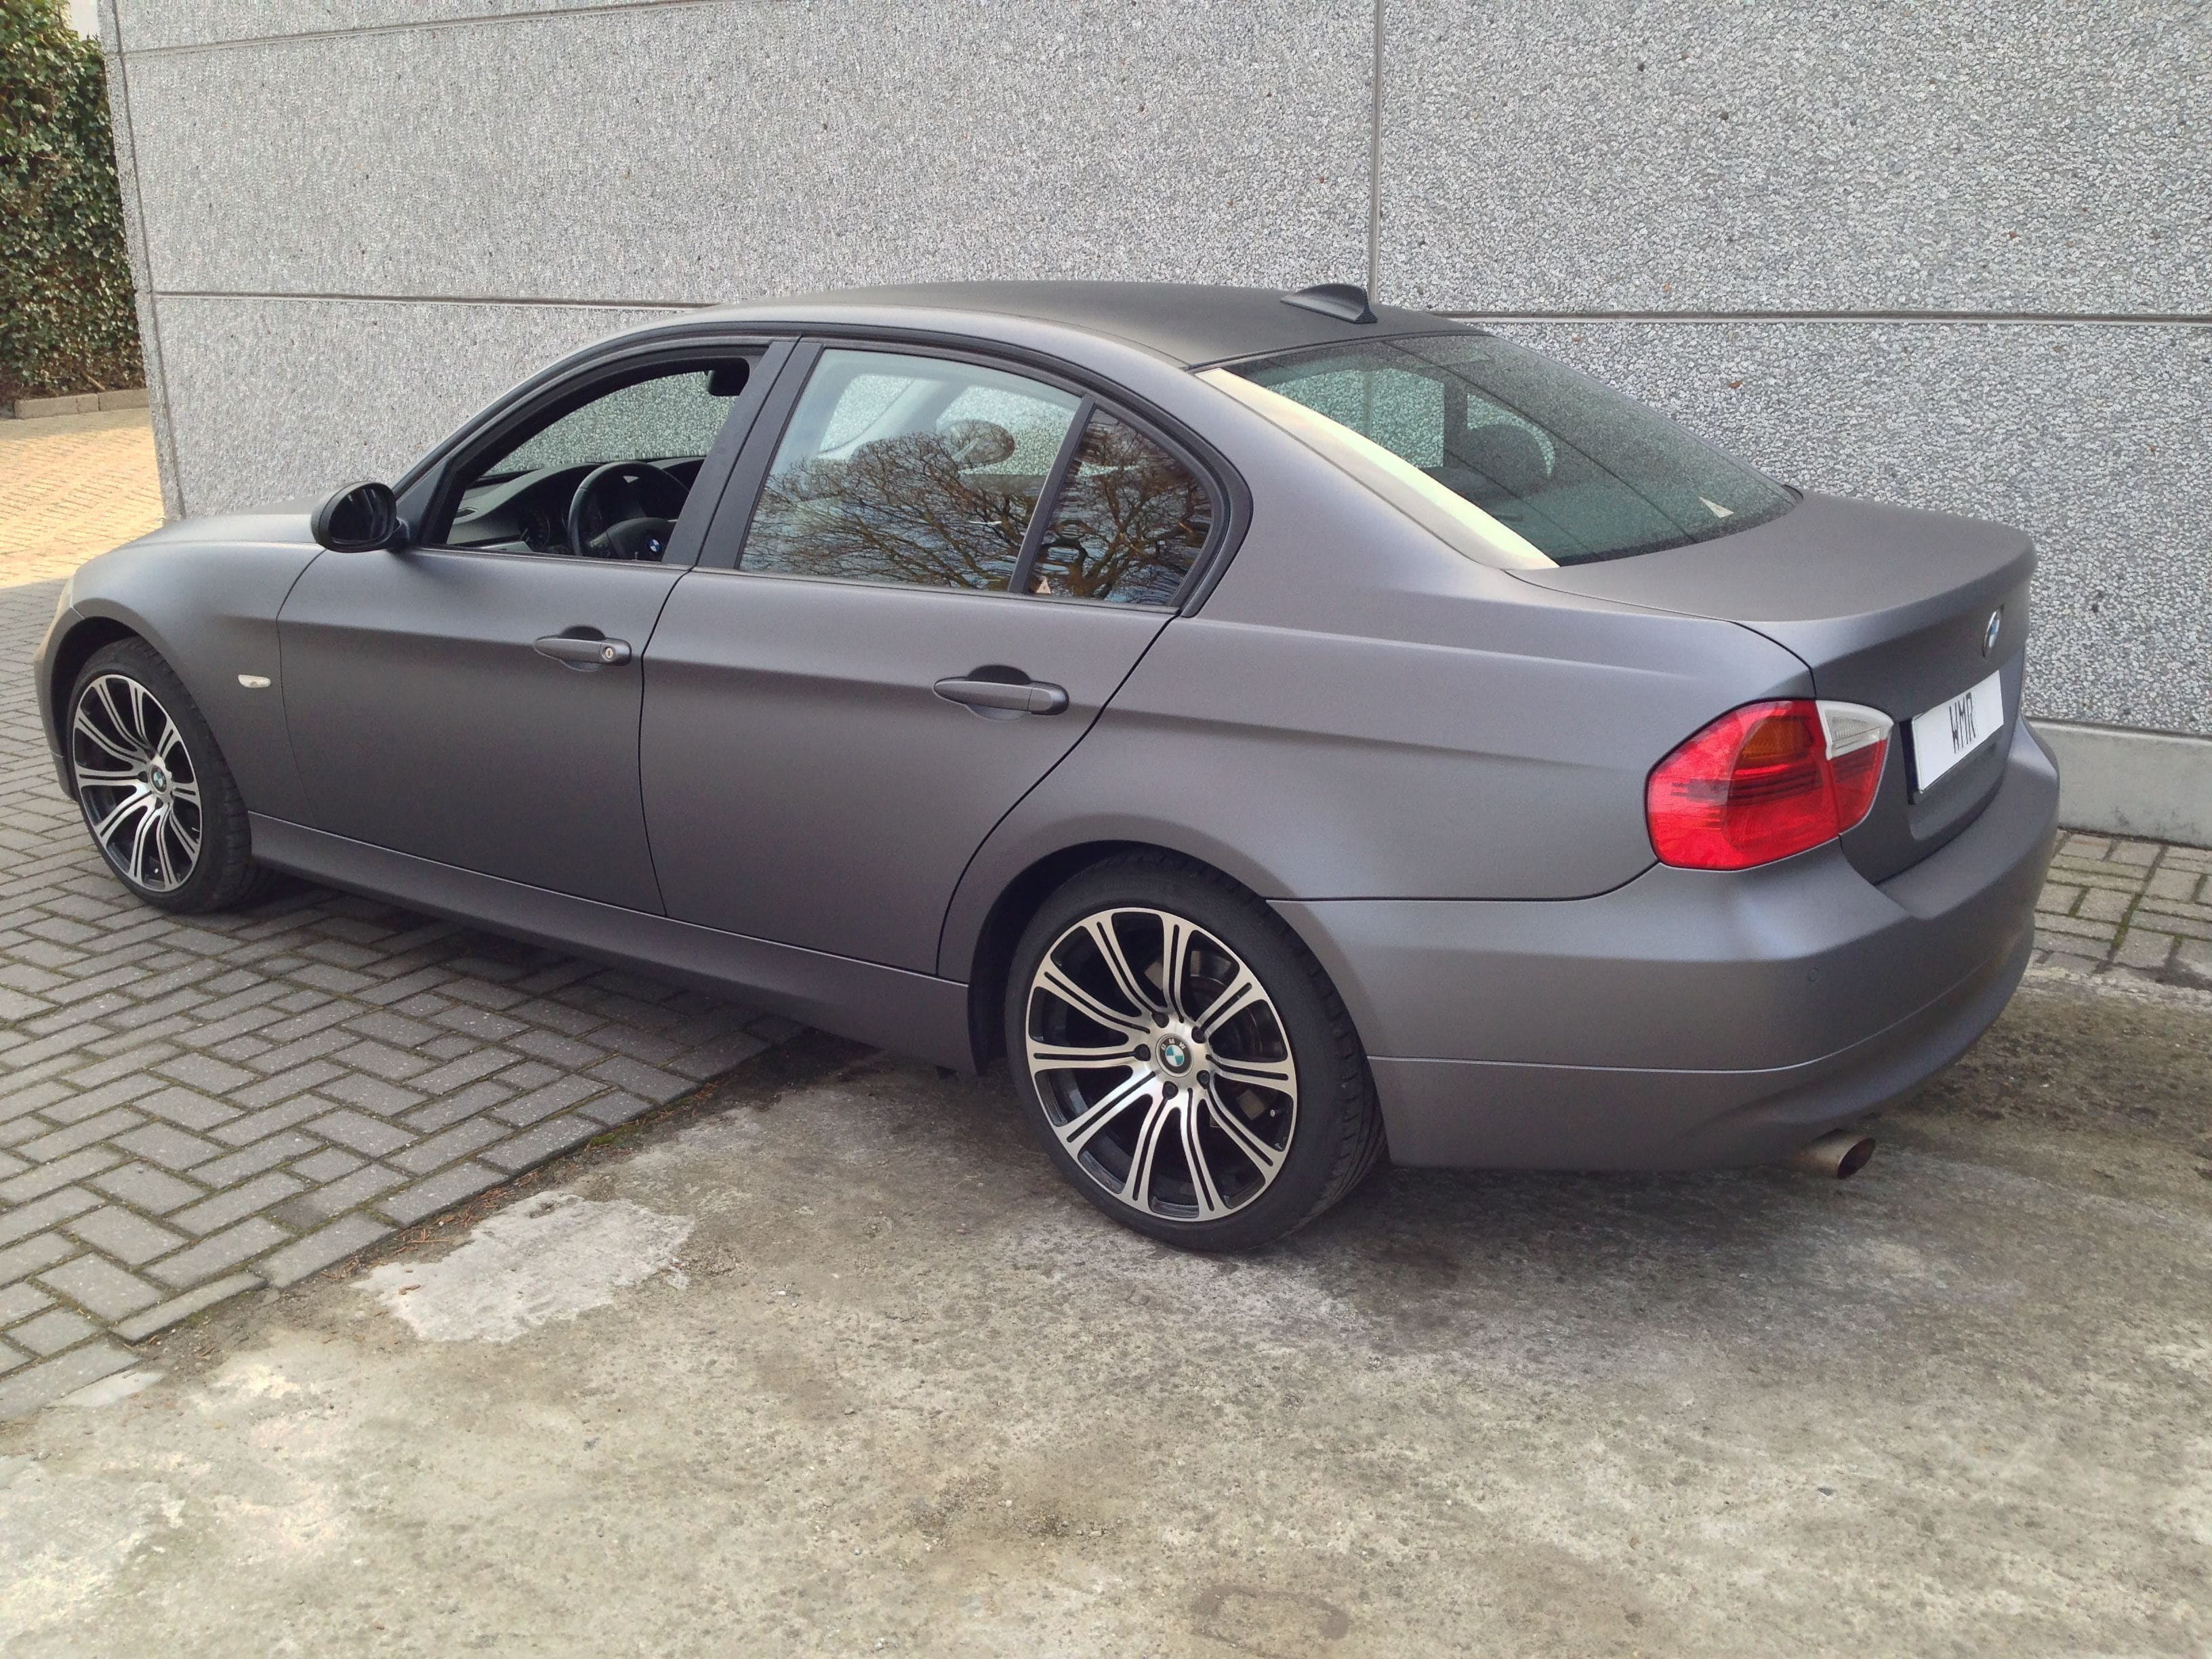 BMW E90 met Gunpowder Wrap, Carwrapping door Wrapmyride.nu Foto-nr:5389, ©2021